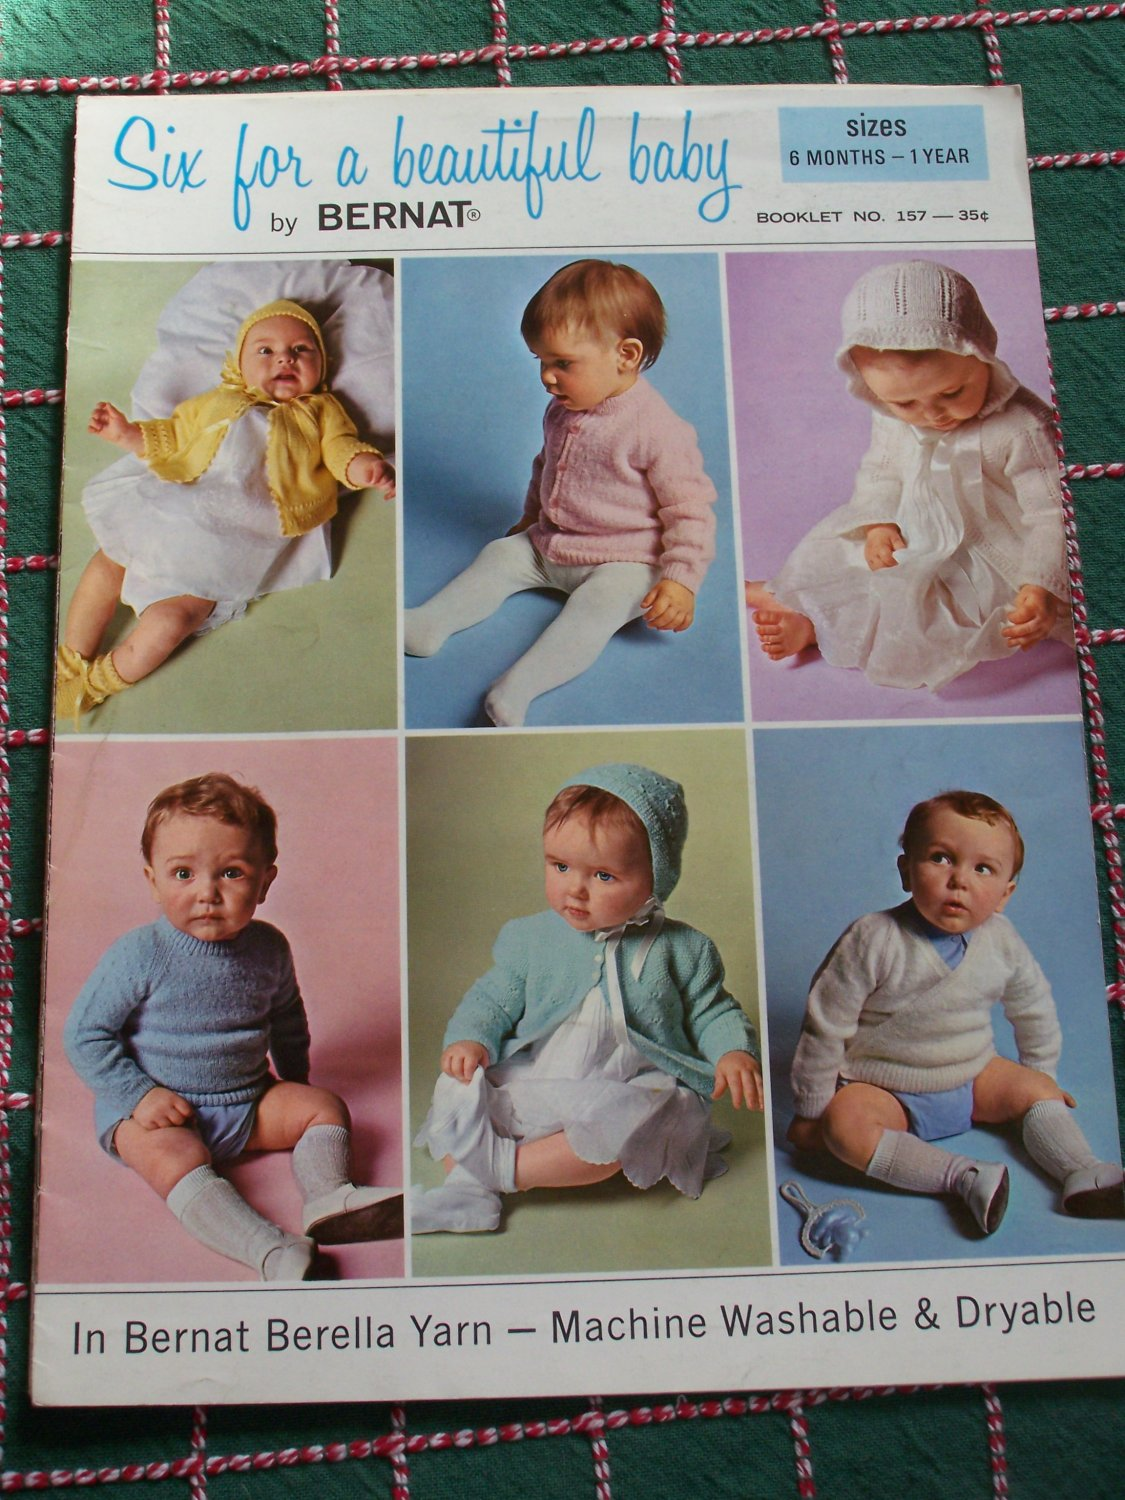 Vintage Knitting Patterns Baby Sweaters & Bonnets 6 Months - 1 Year